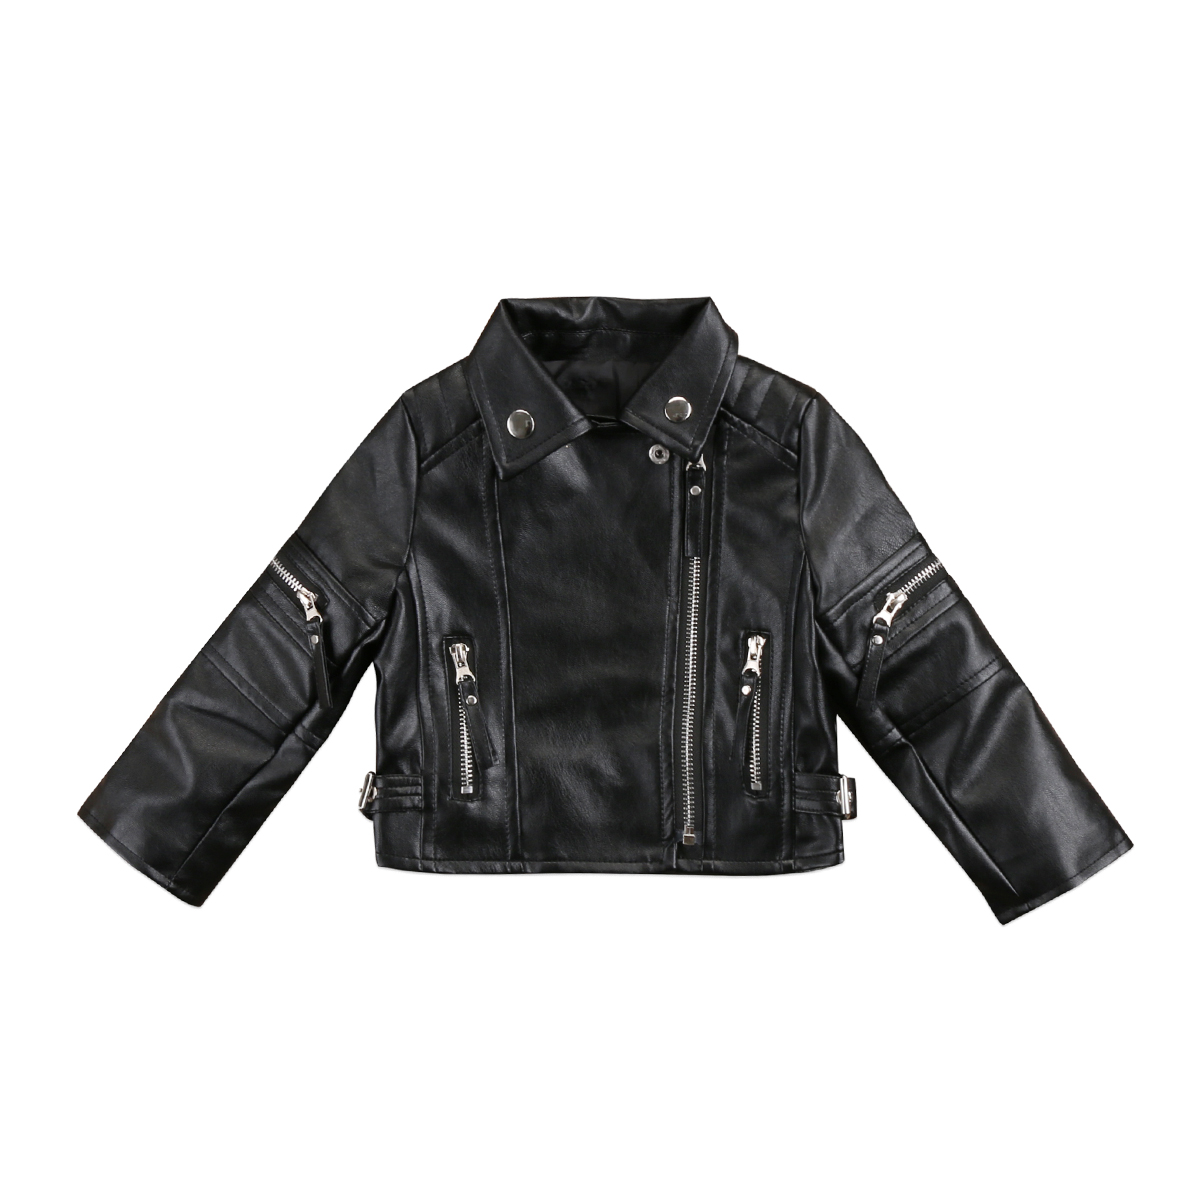 e3cdd91c6 2018 Toddler Kids Baby Girl Fashion Motorcycle PU Leather Jacket ...